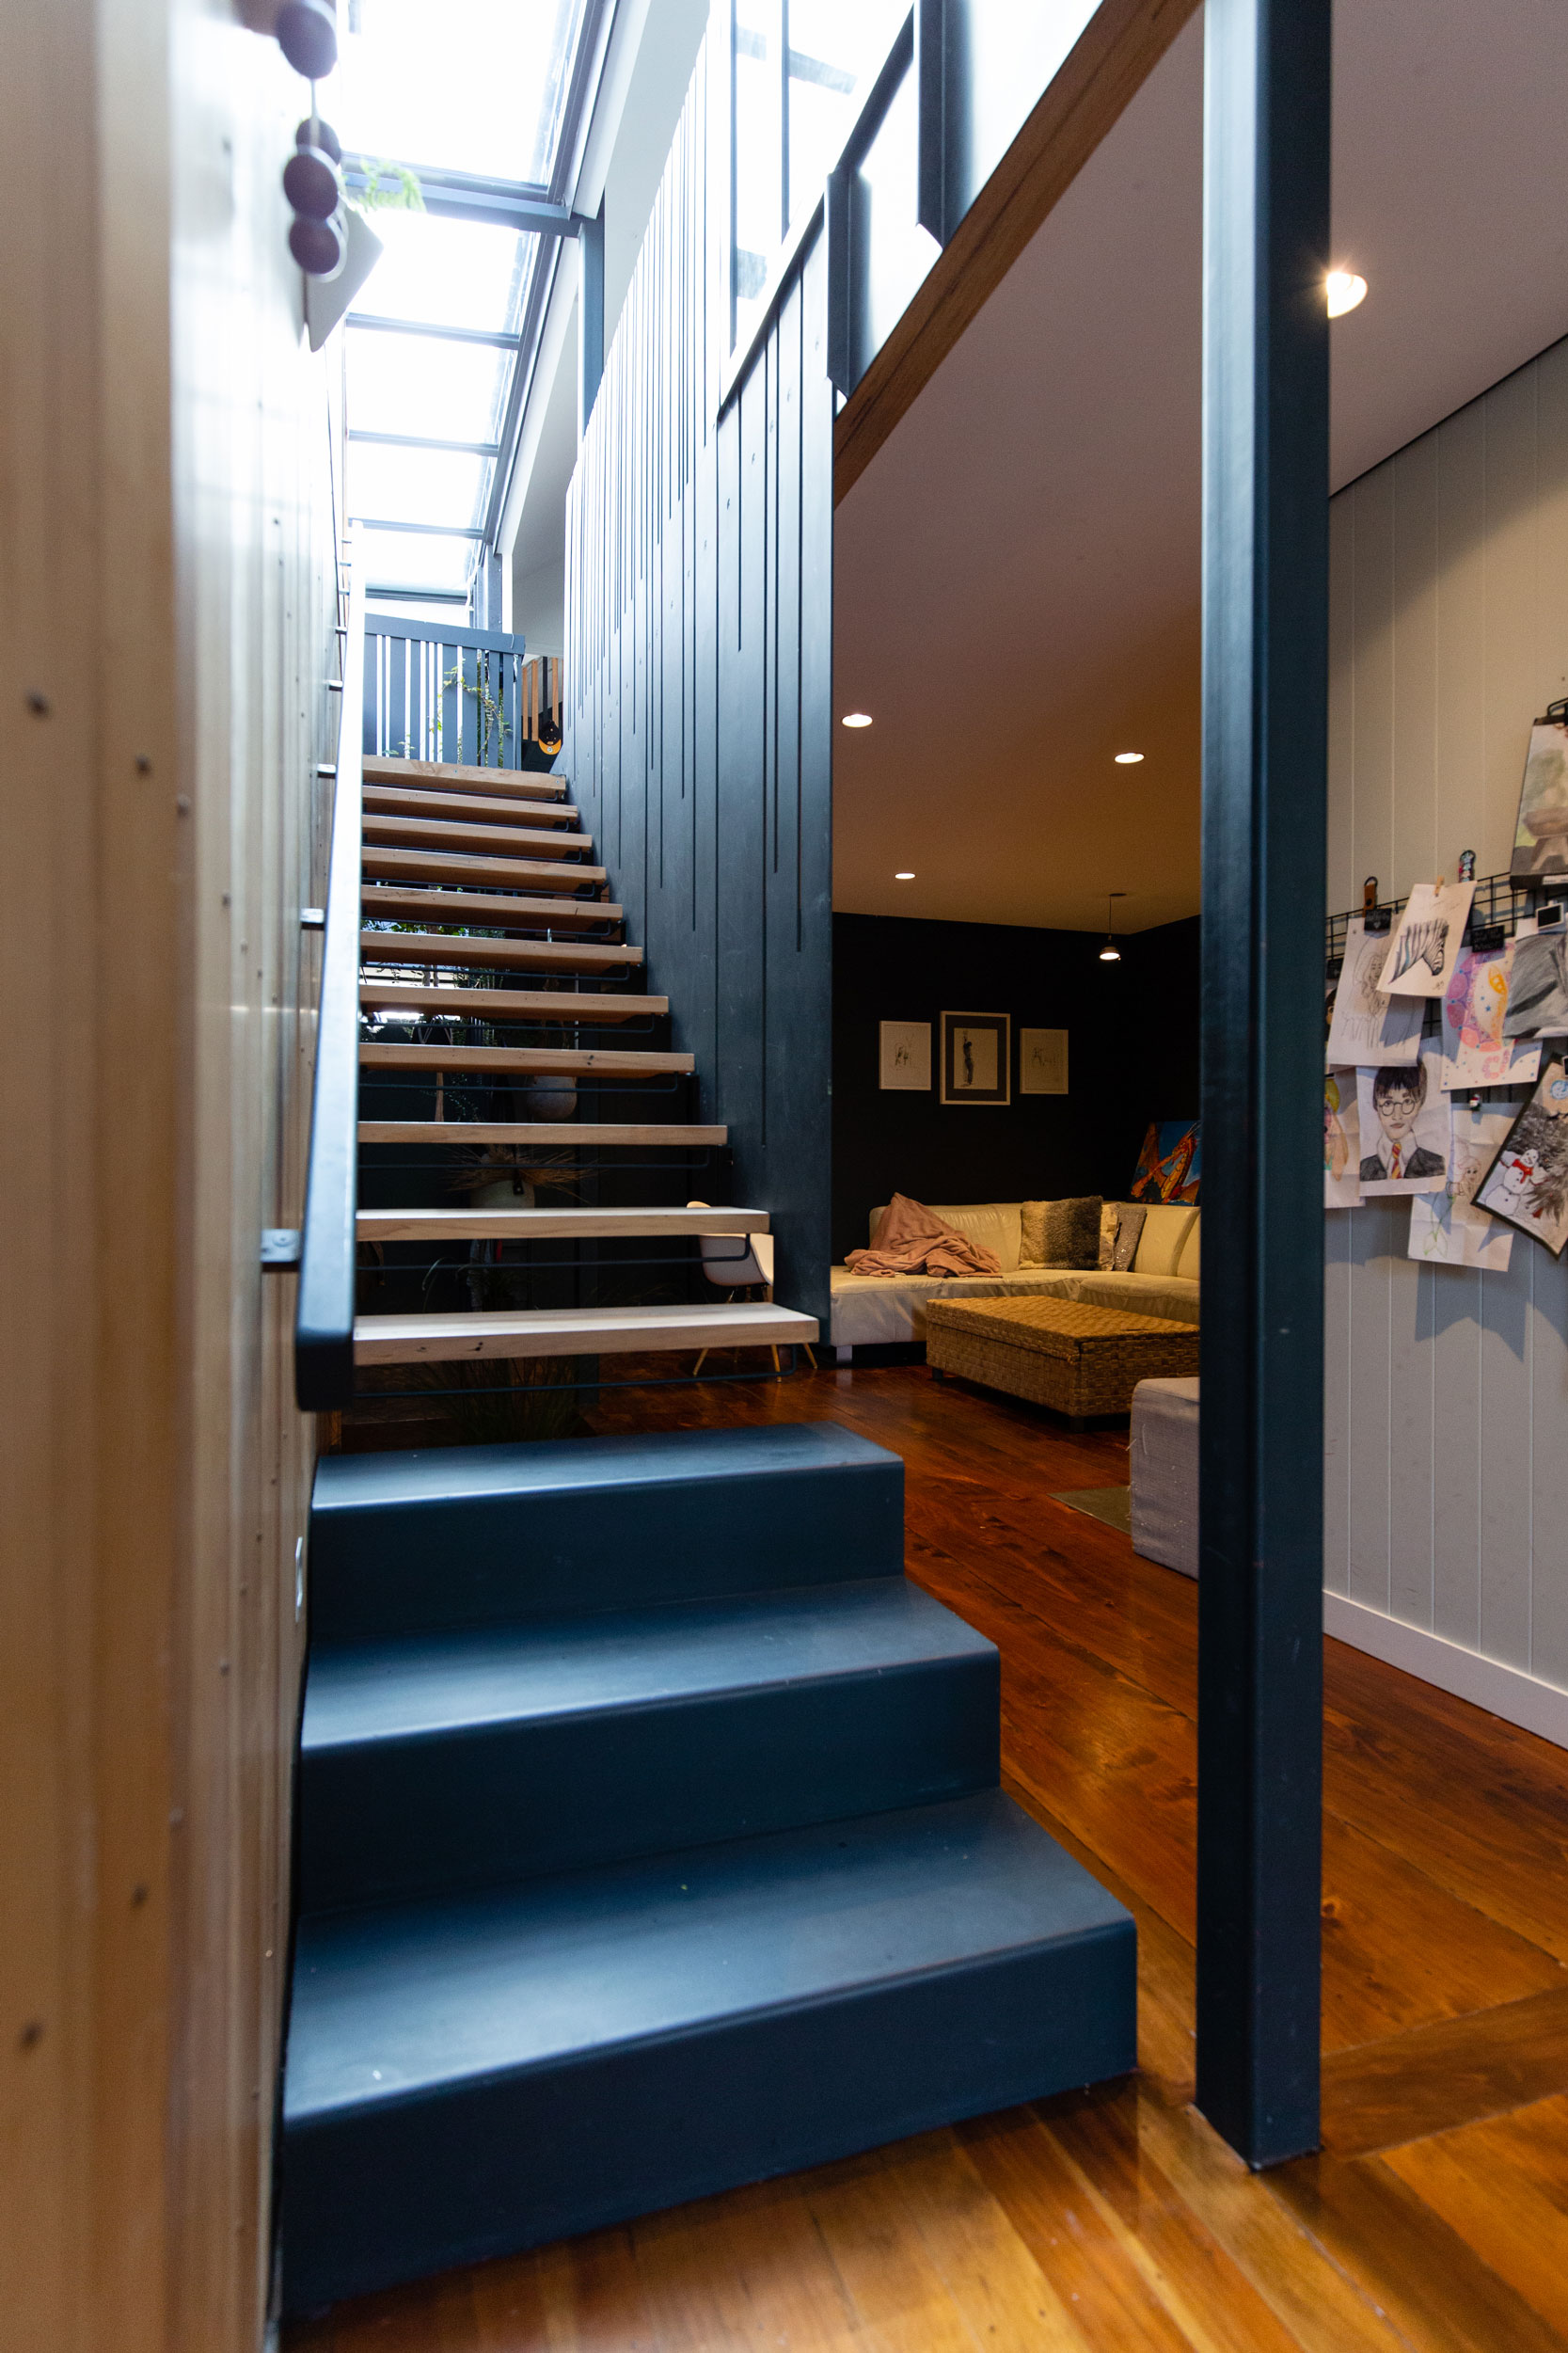 Floating staircase with timber treads and steel balustrade designed and built by Stairworks